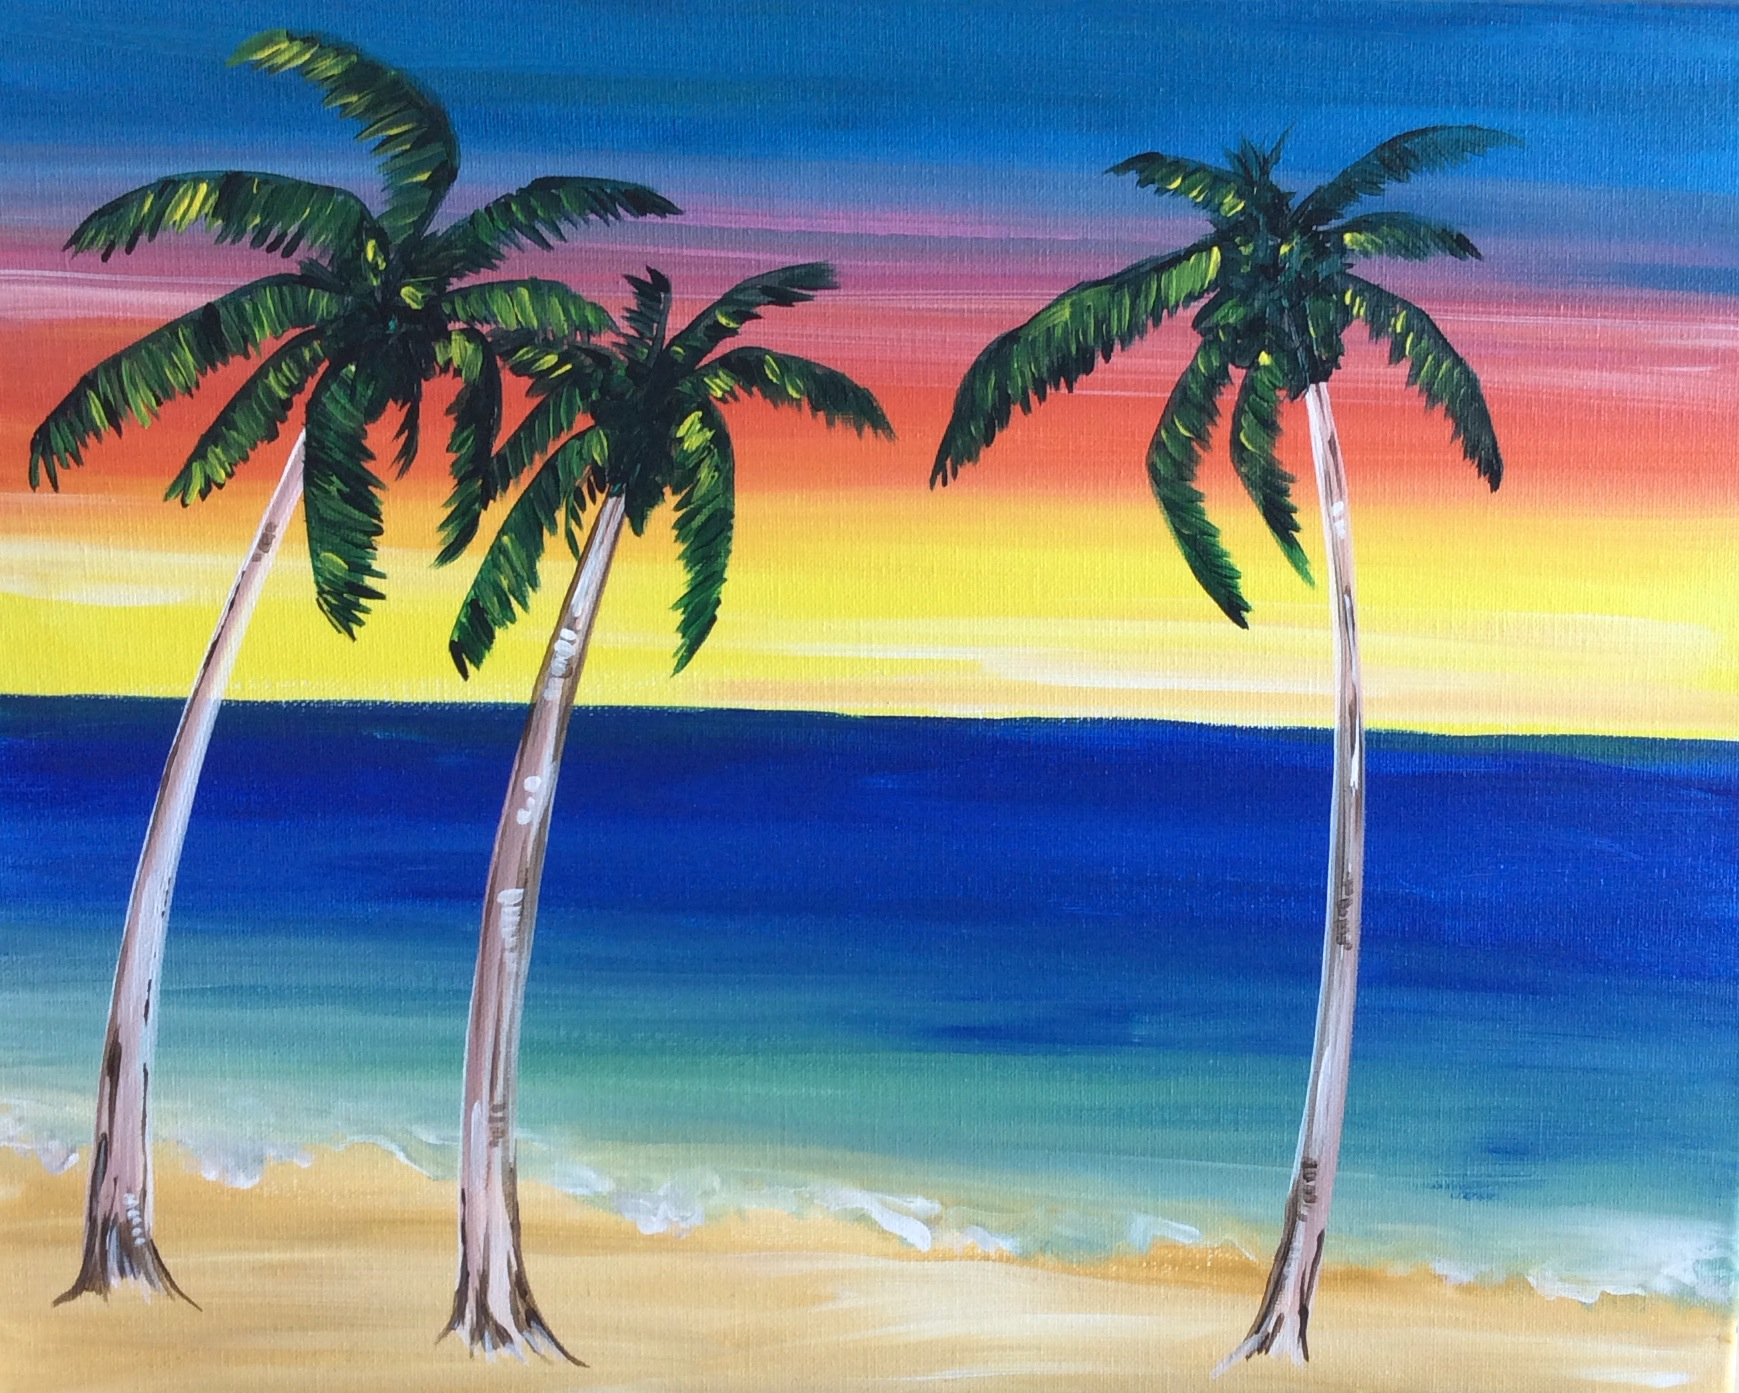 Three Palms on Sunset - 2 Hours